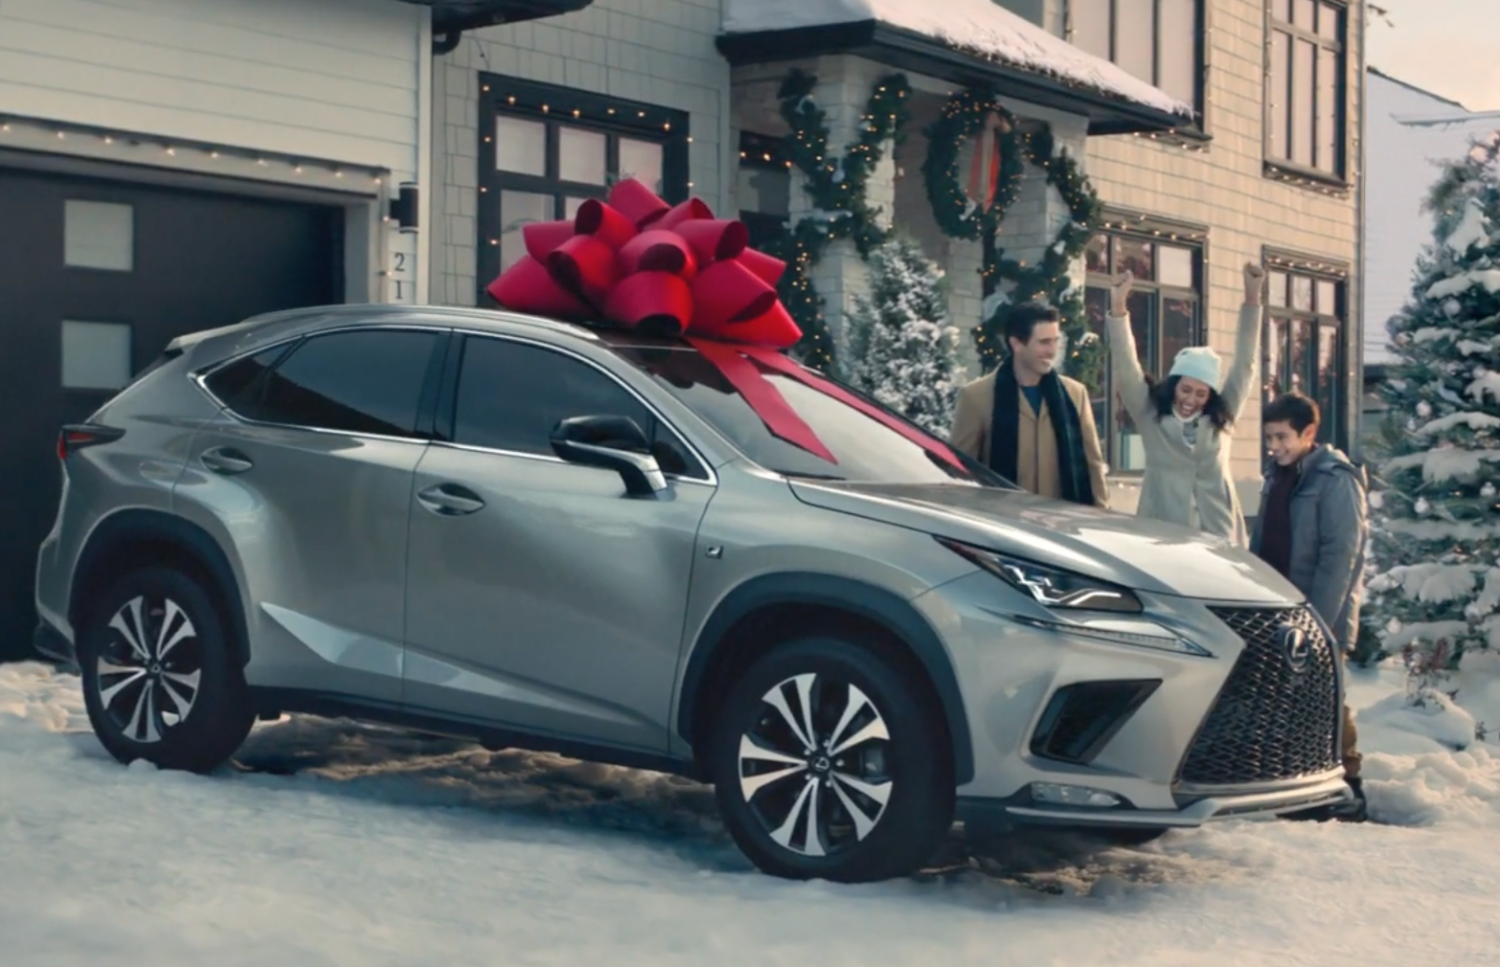 Lexus Christmas Commercial 2020 Tis the Season for Giving: 20 Years of Lexus' Signature Red